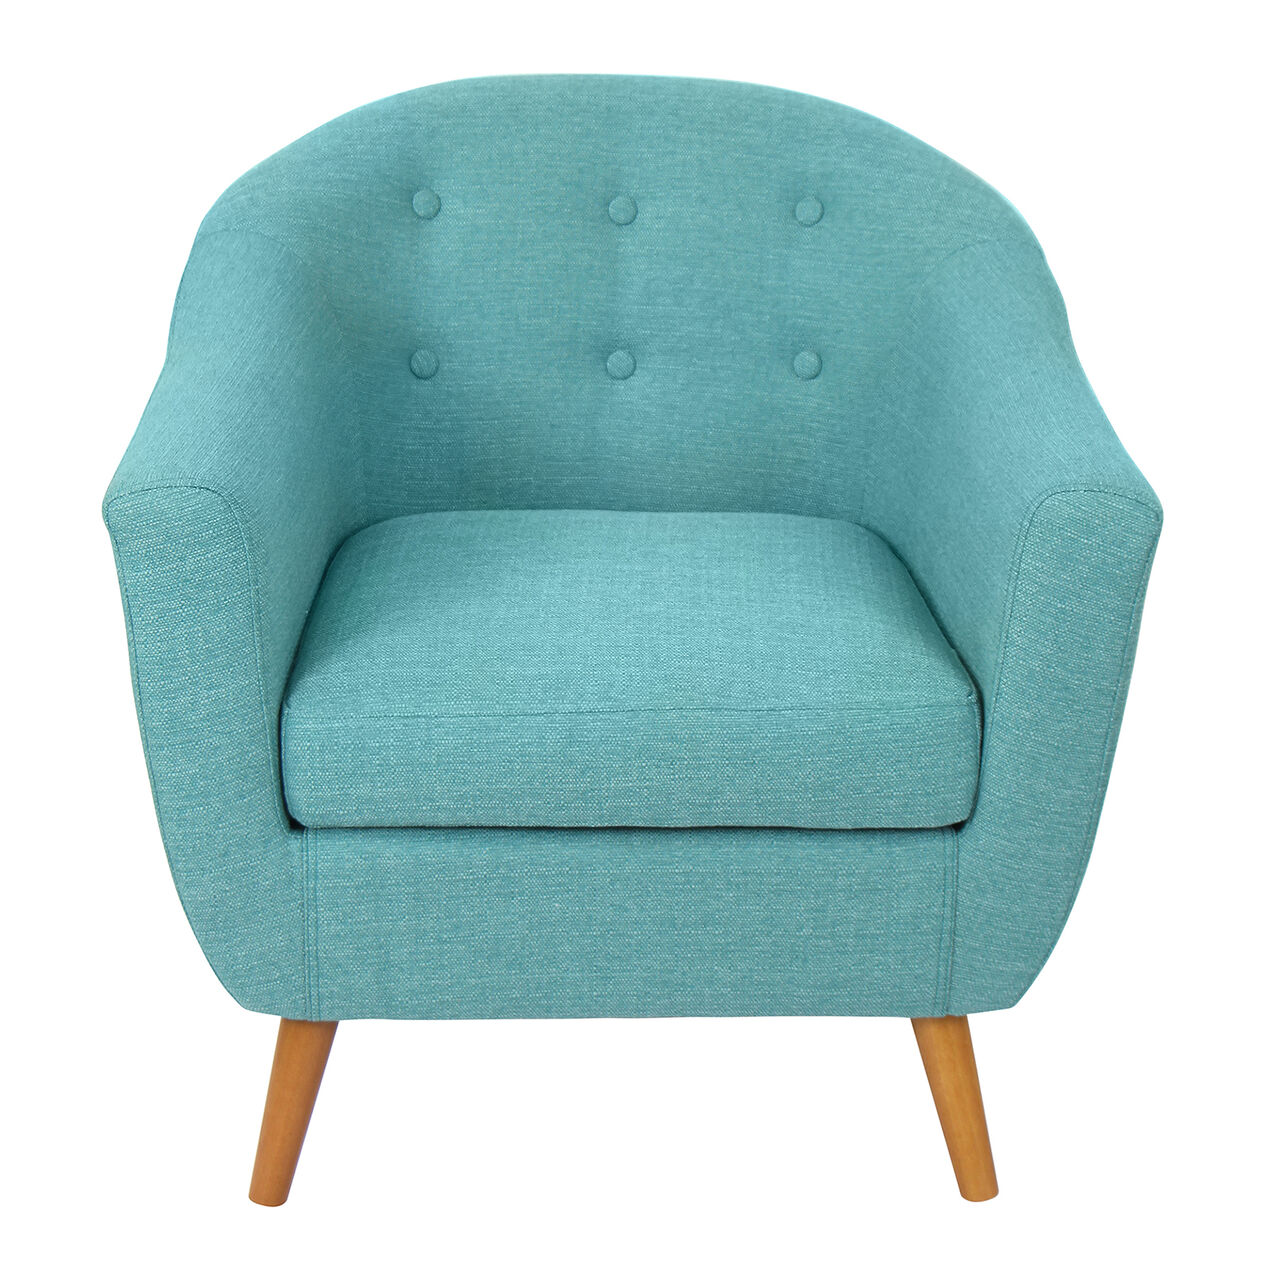 Rockwell Accent Chair Teal At Home